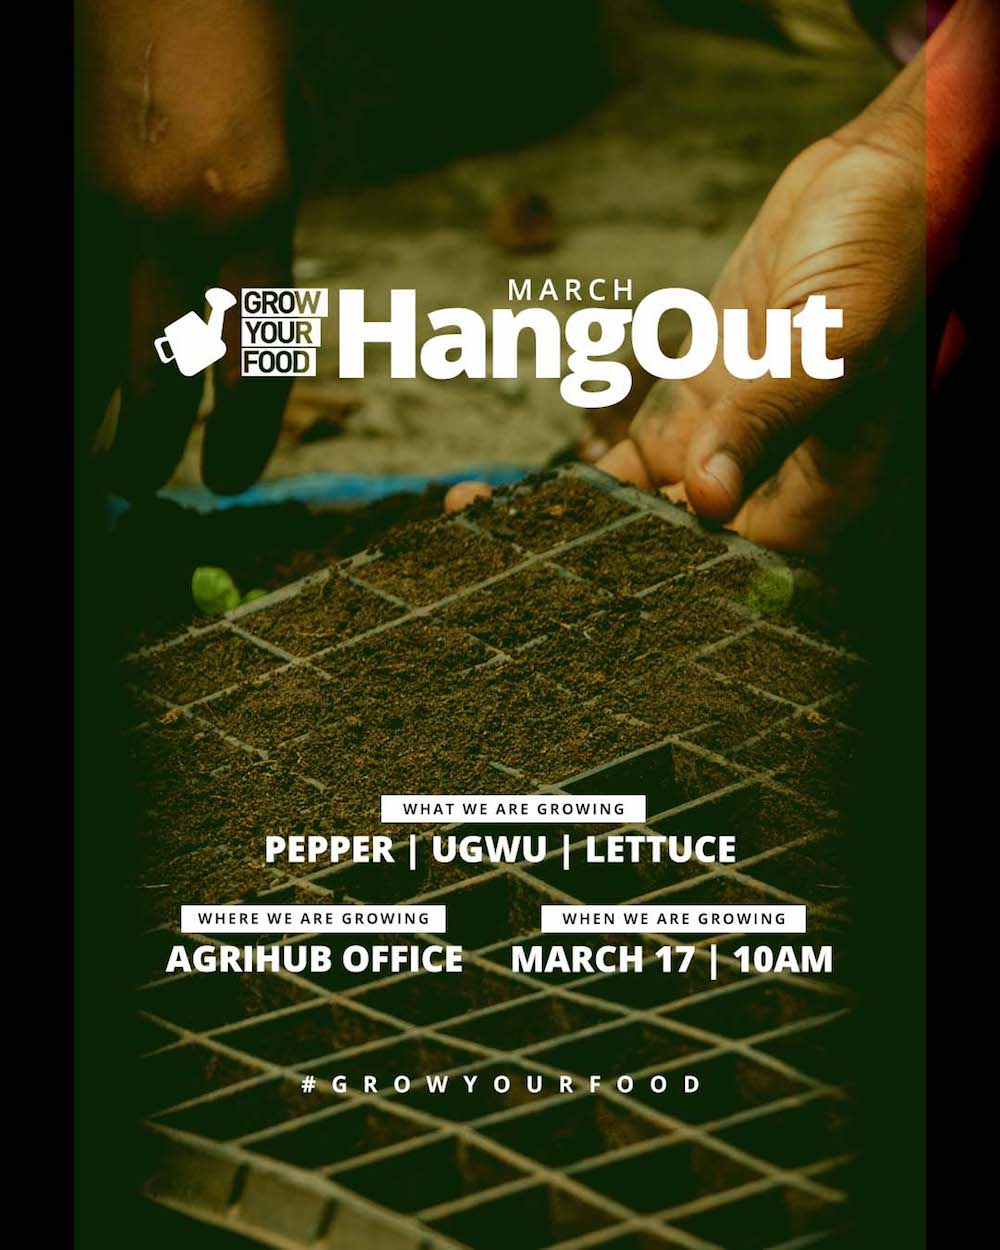 AgriHub-GrowYourFood-02-Feb-2018-IG-HangOut-March.jpg